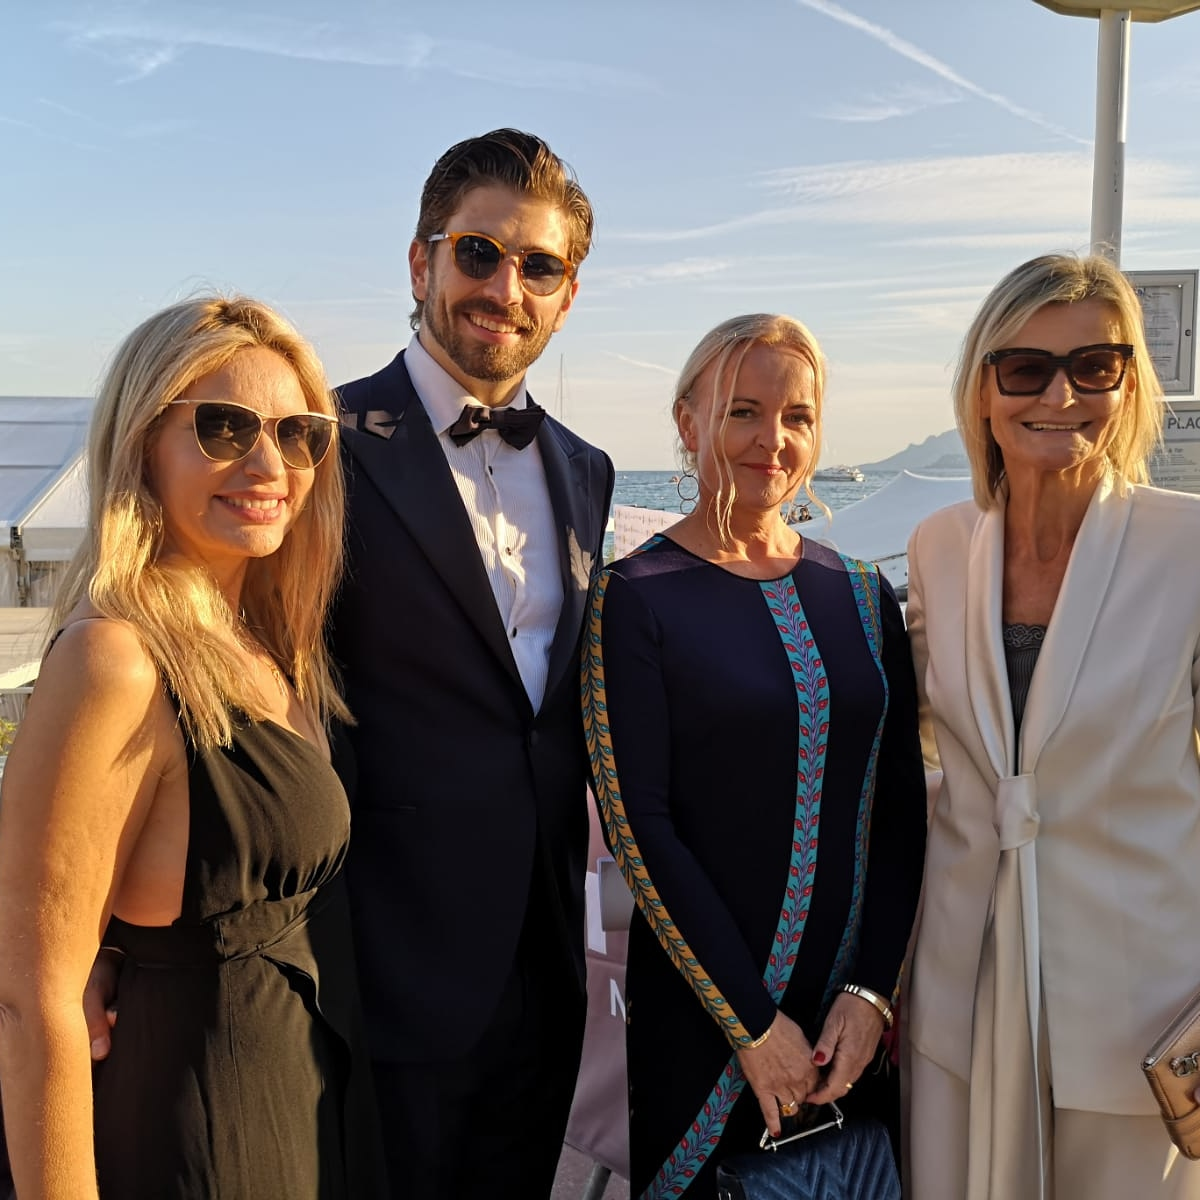 CINÉMOI 'STARS UNITED FOR GOOD' GALA in Cannes: actress and author Meadow Williams, successful austrian actor living in Los Angeles Swen Temmel, Susanne Baumann Cox - The Good Gin and Journalist&Publisher Hedi Grager (Photo by Reinhard Sudy)